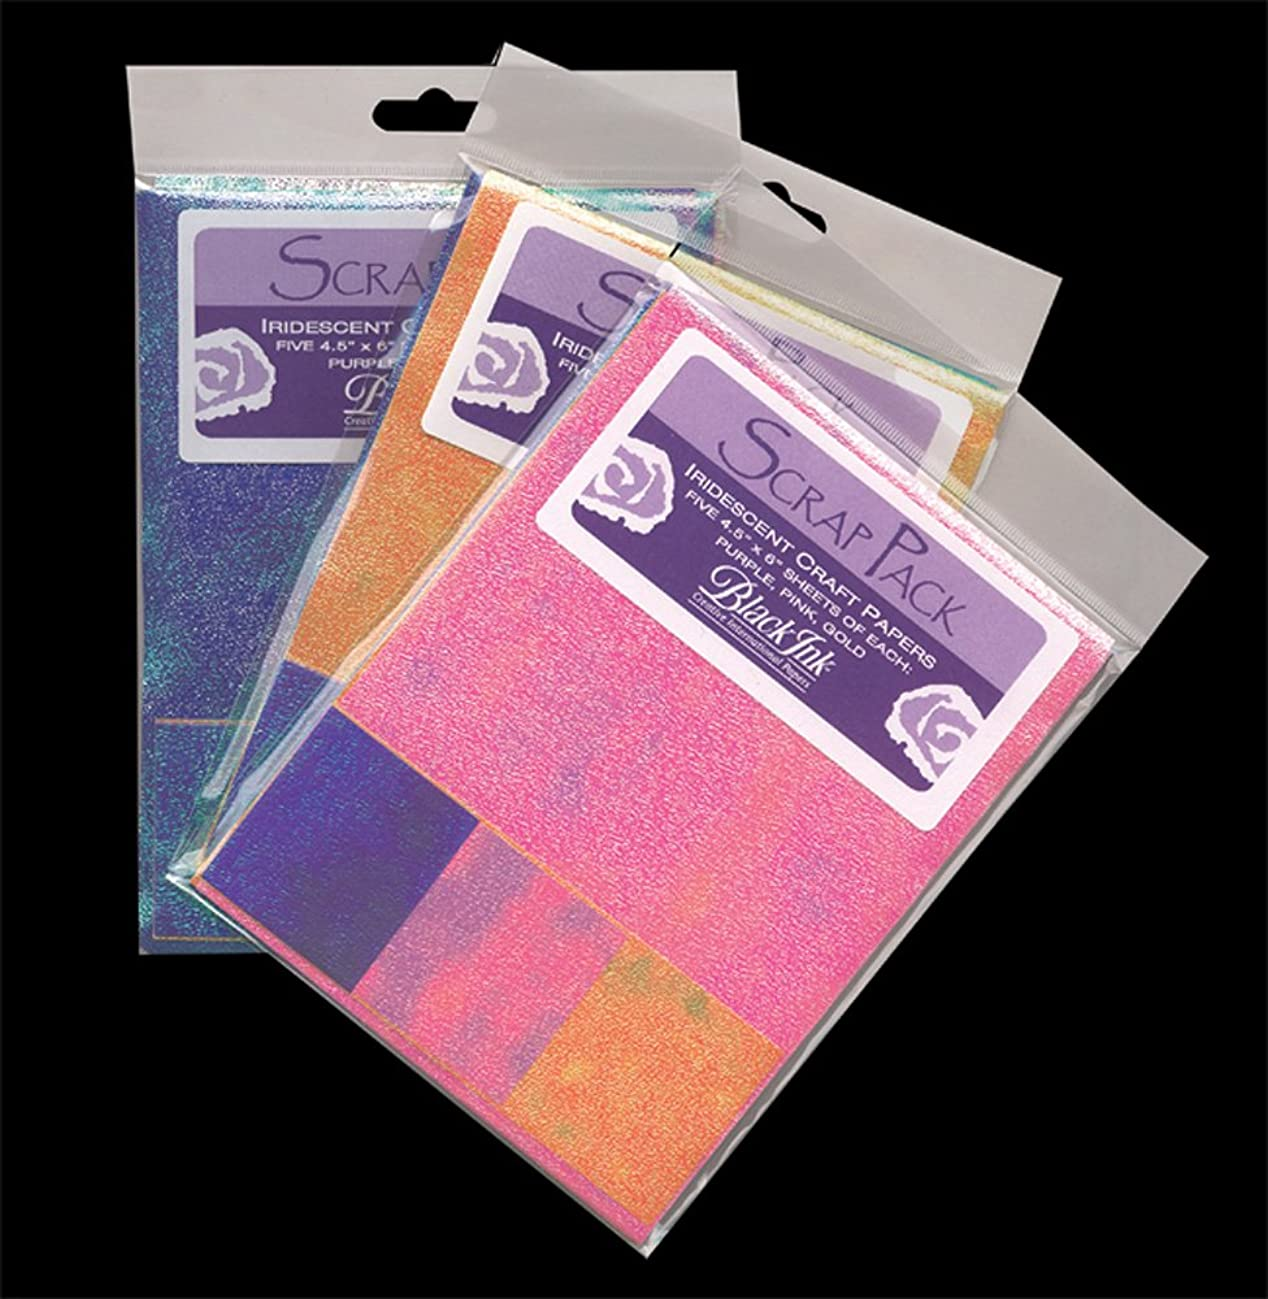 Paper Scrap Pack: Assorted Iridescent Papers